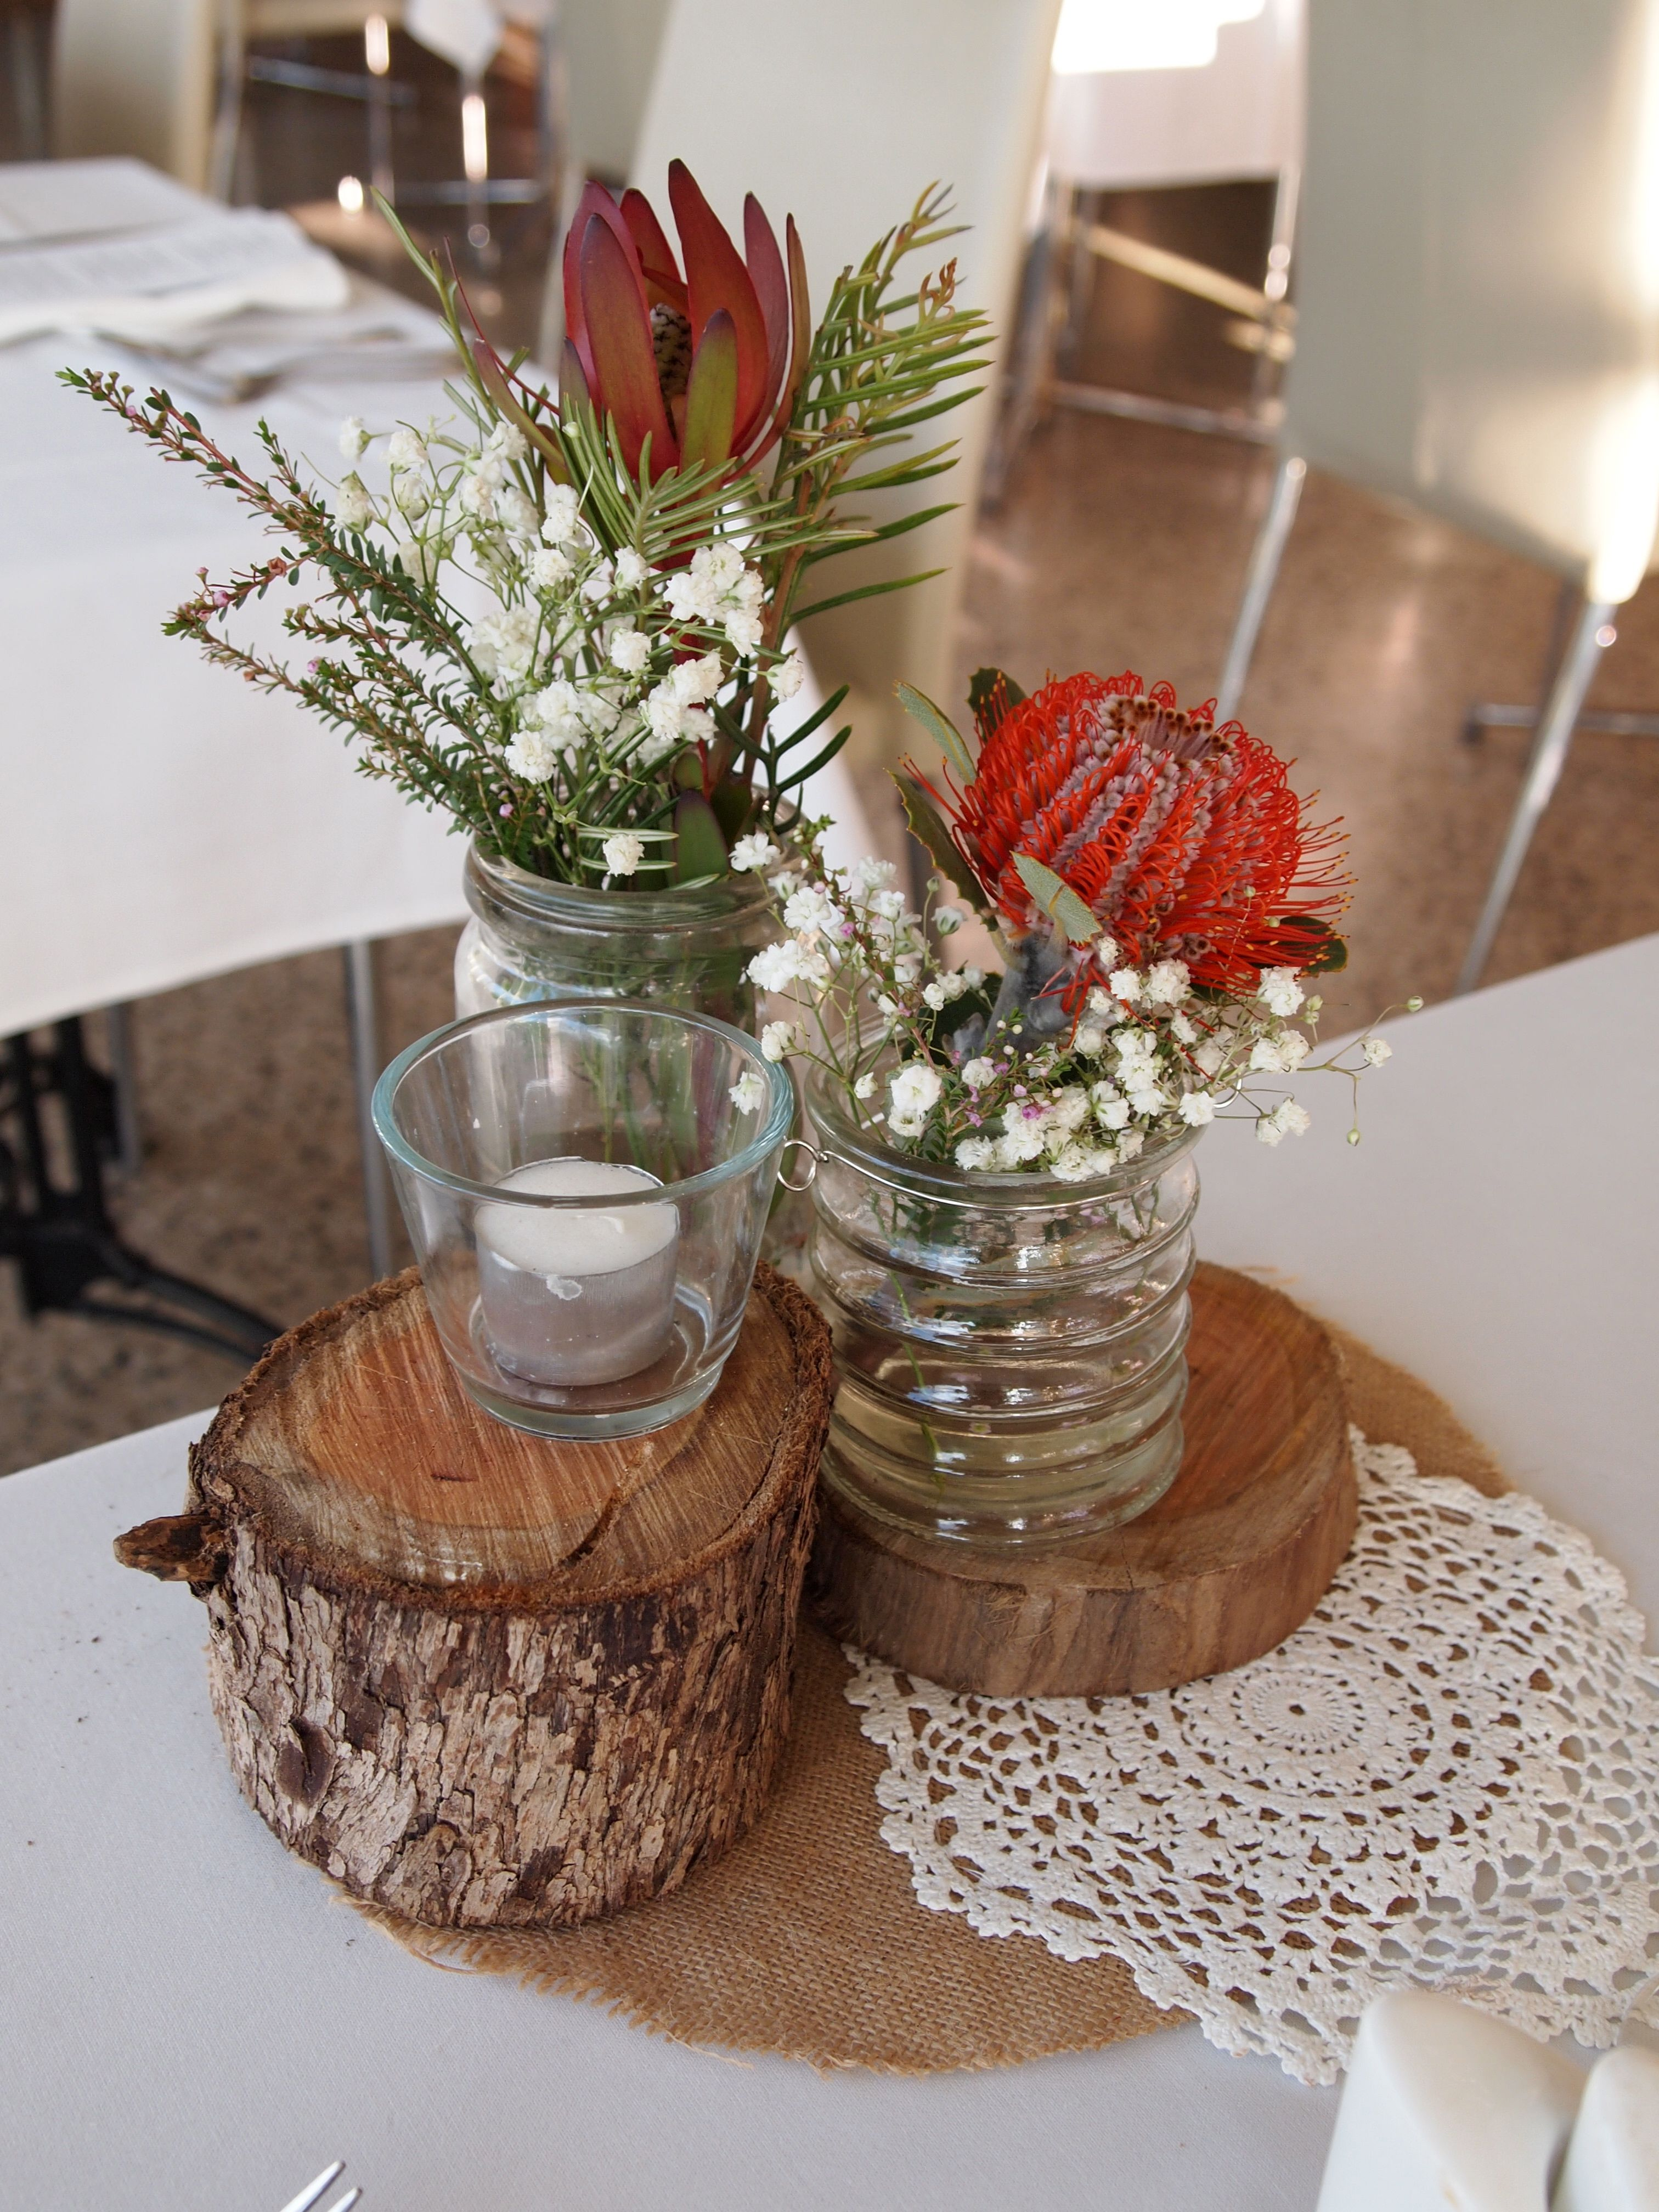 Rustic stumps as wedding centrepieces with australia native rustic stumps as wedding centrepieces with australia native flowers junglespirit Gallery